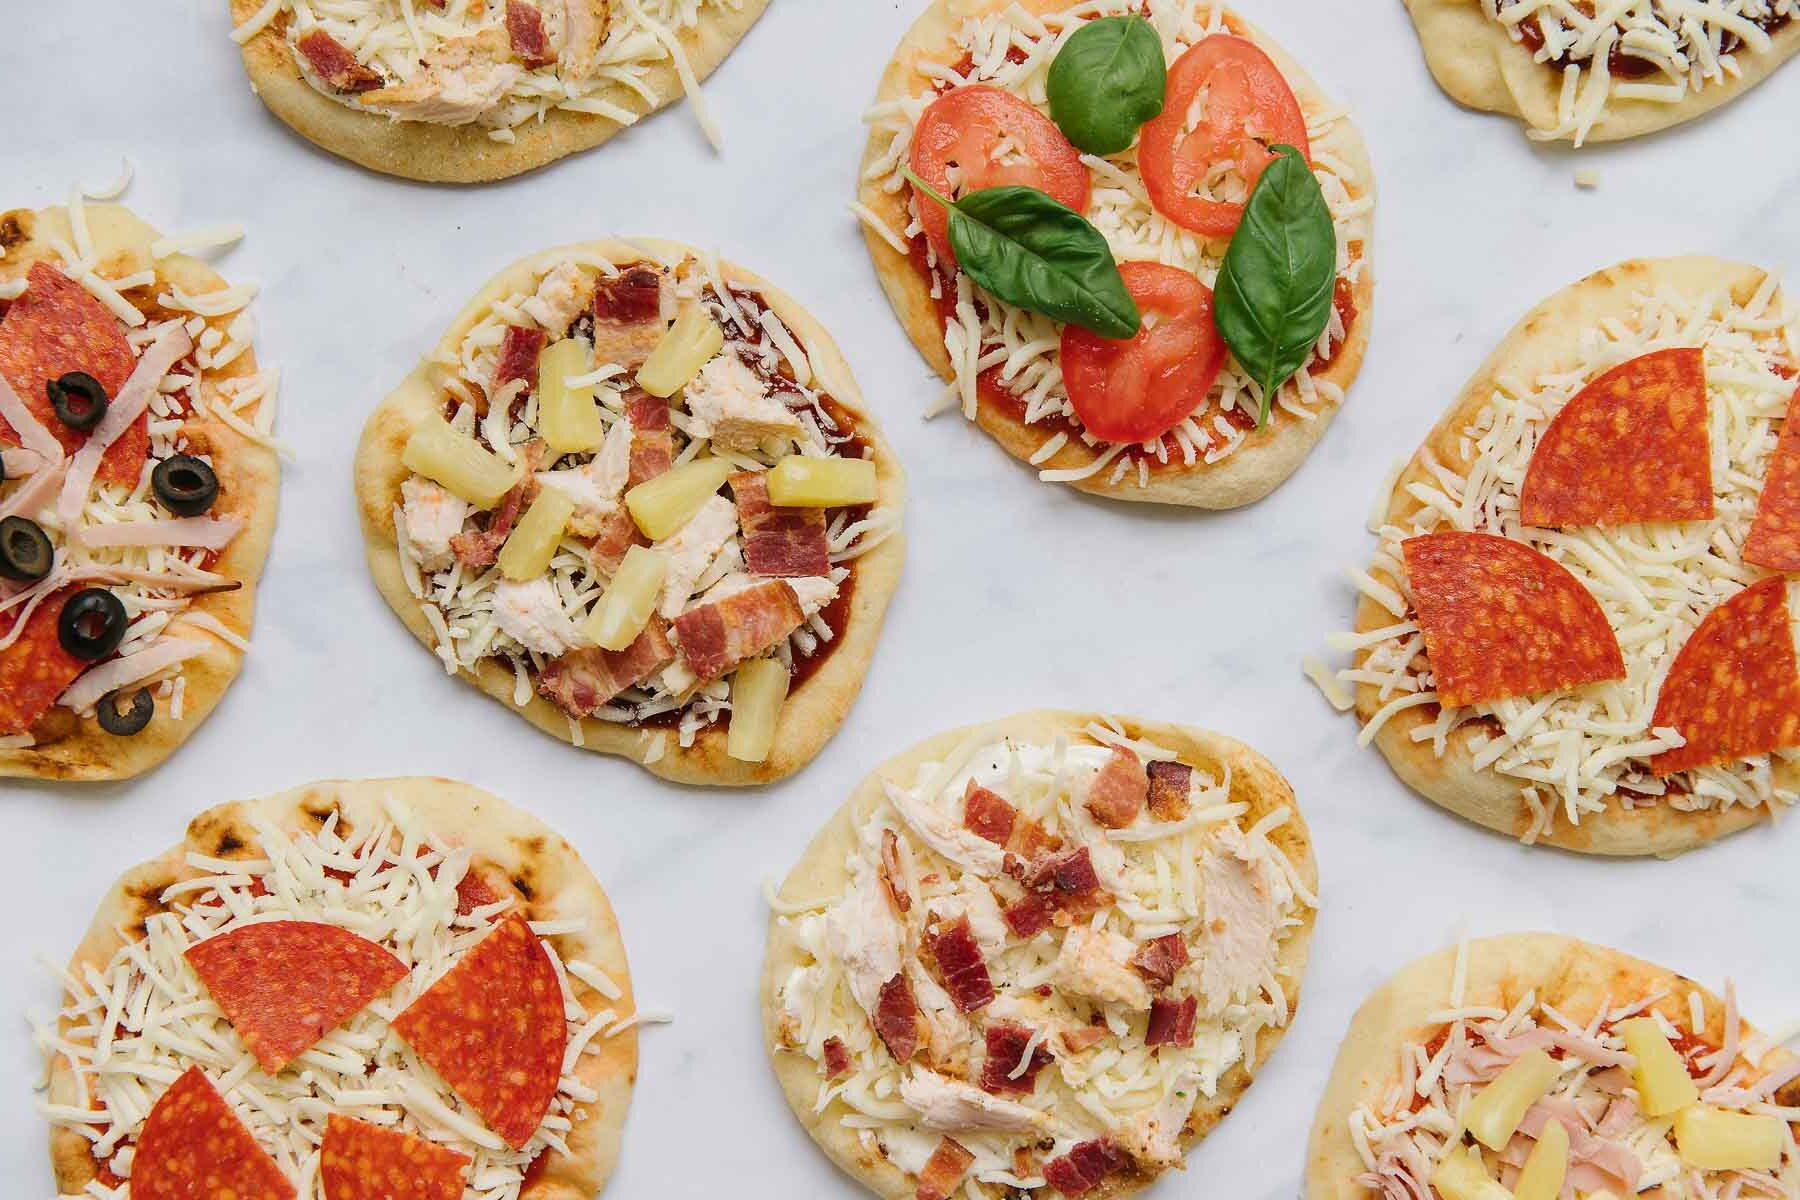 Different naan pizzas with different toppings on a white marble slab.